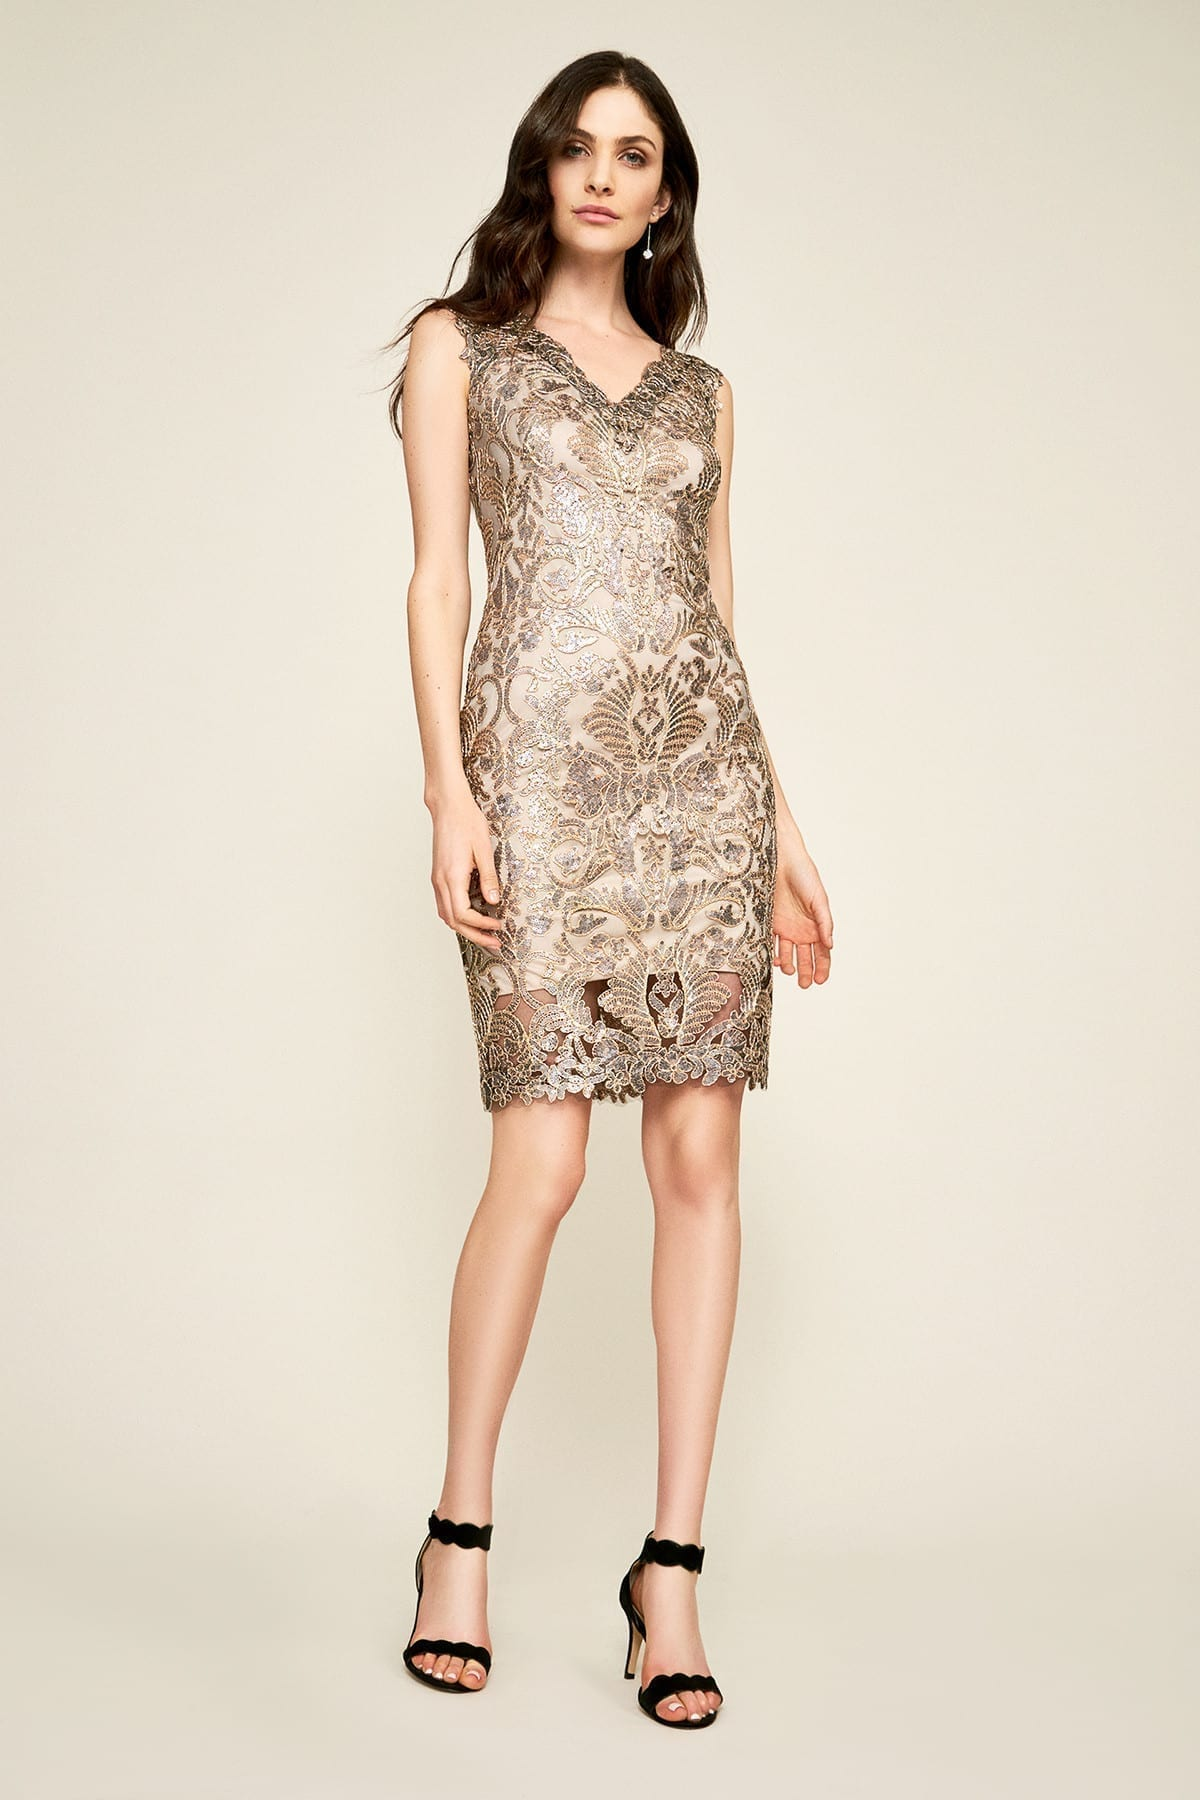 TADASHI SHOJI Antlia Metallic Corded Embroidered Dress